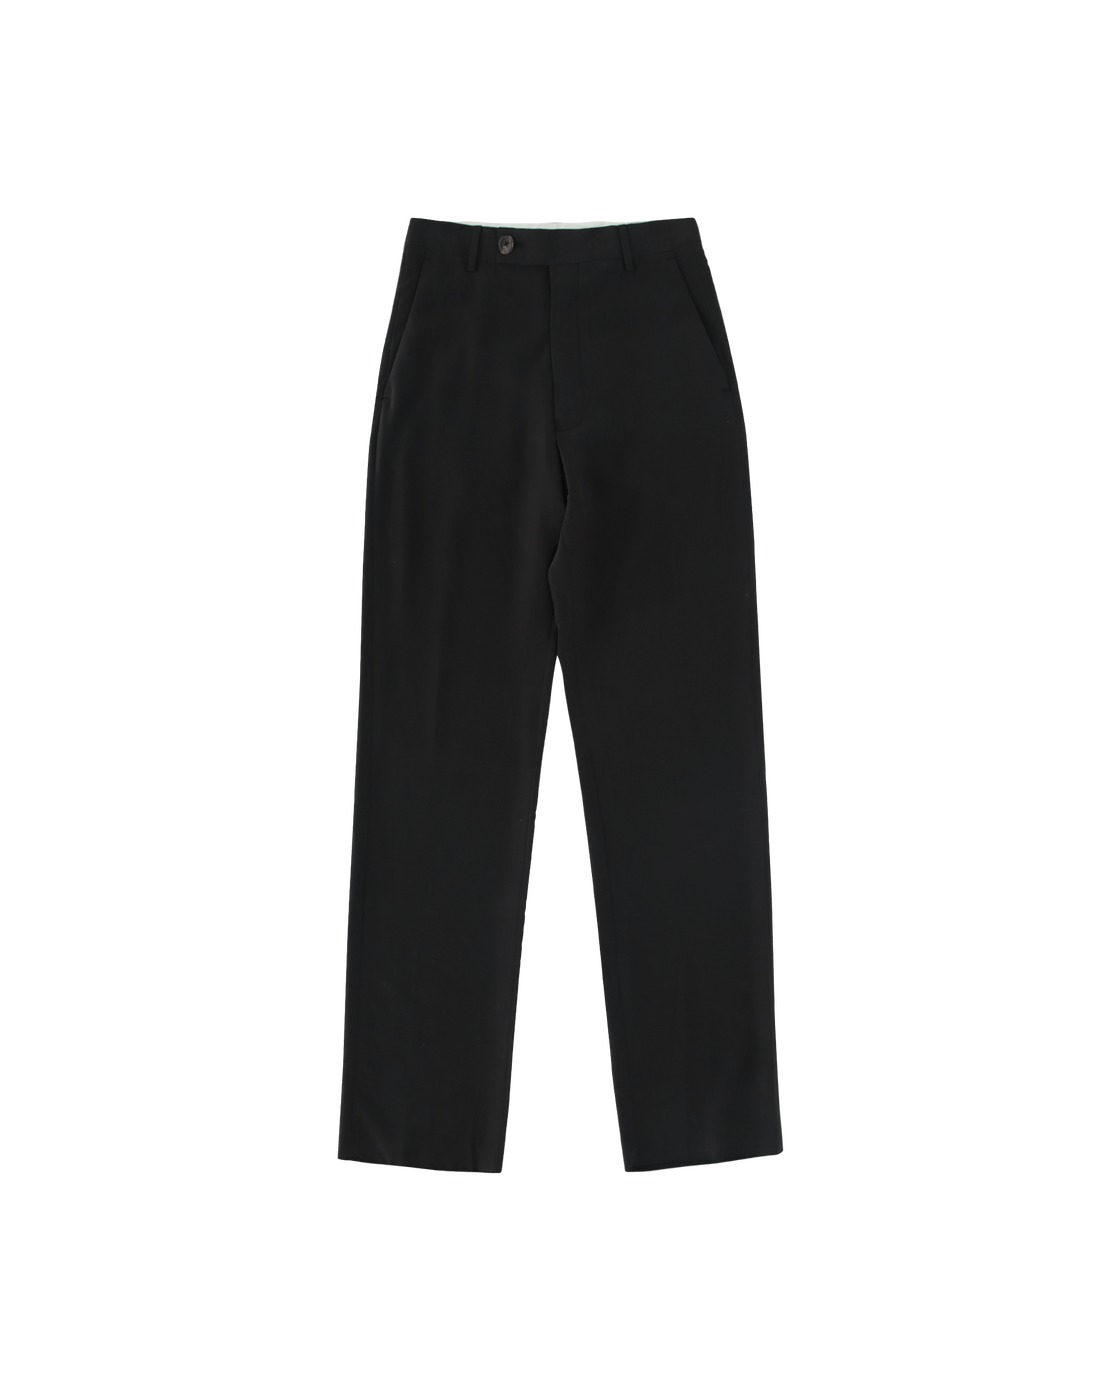 Martine Rose Straight Tailored Trousers Black